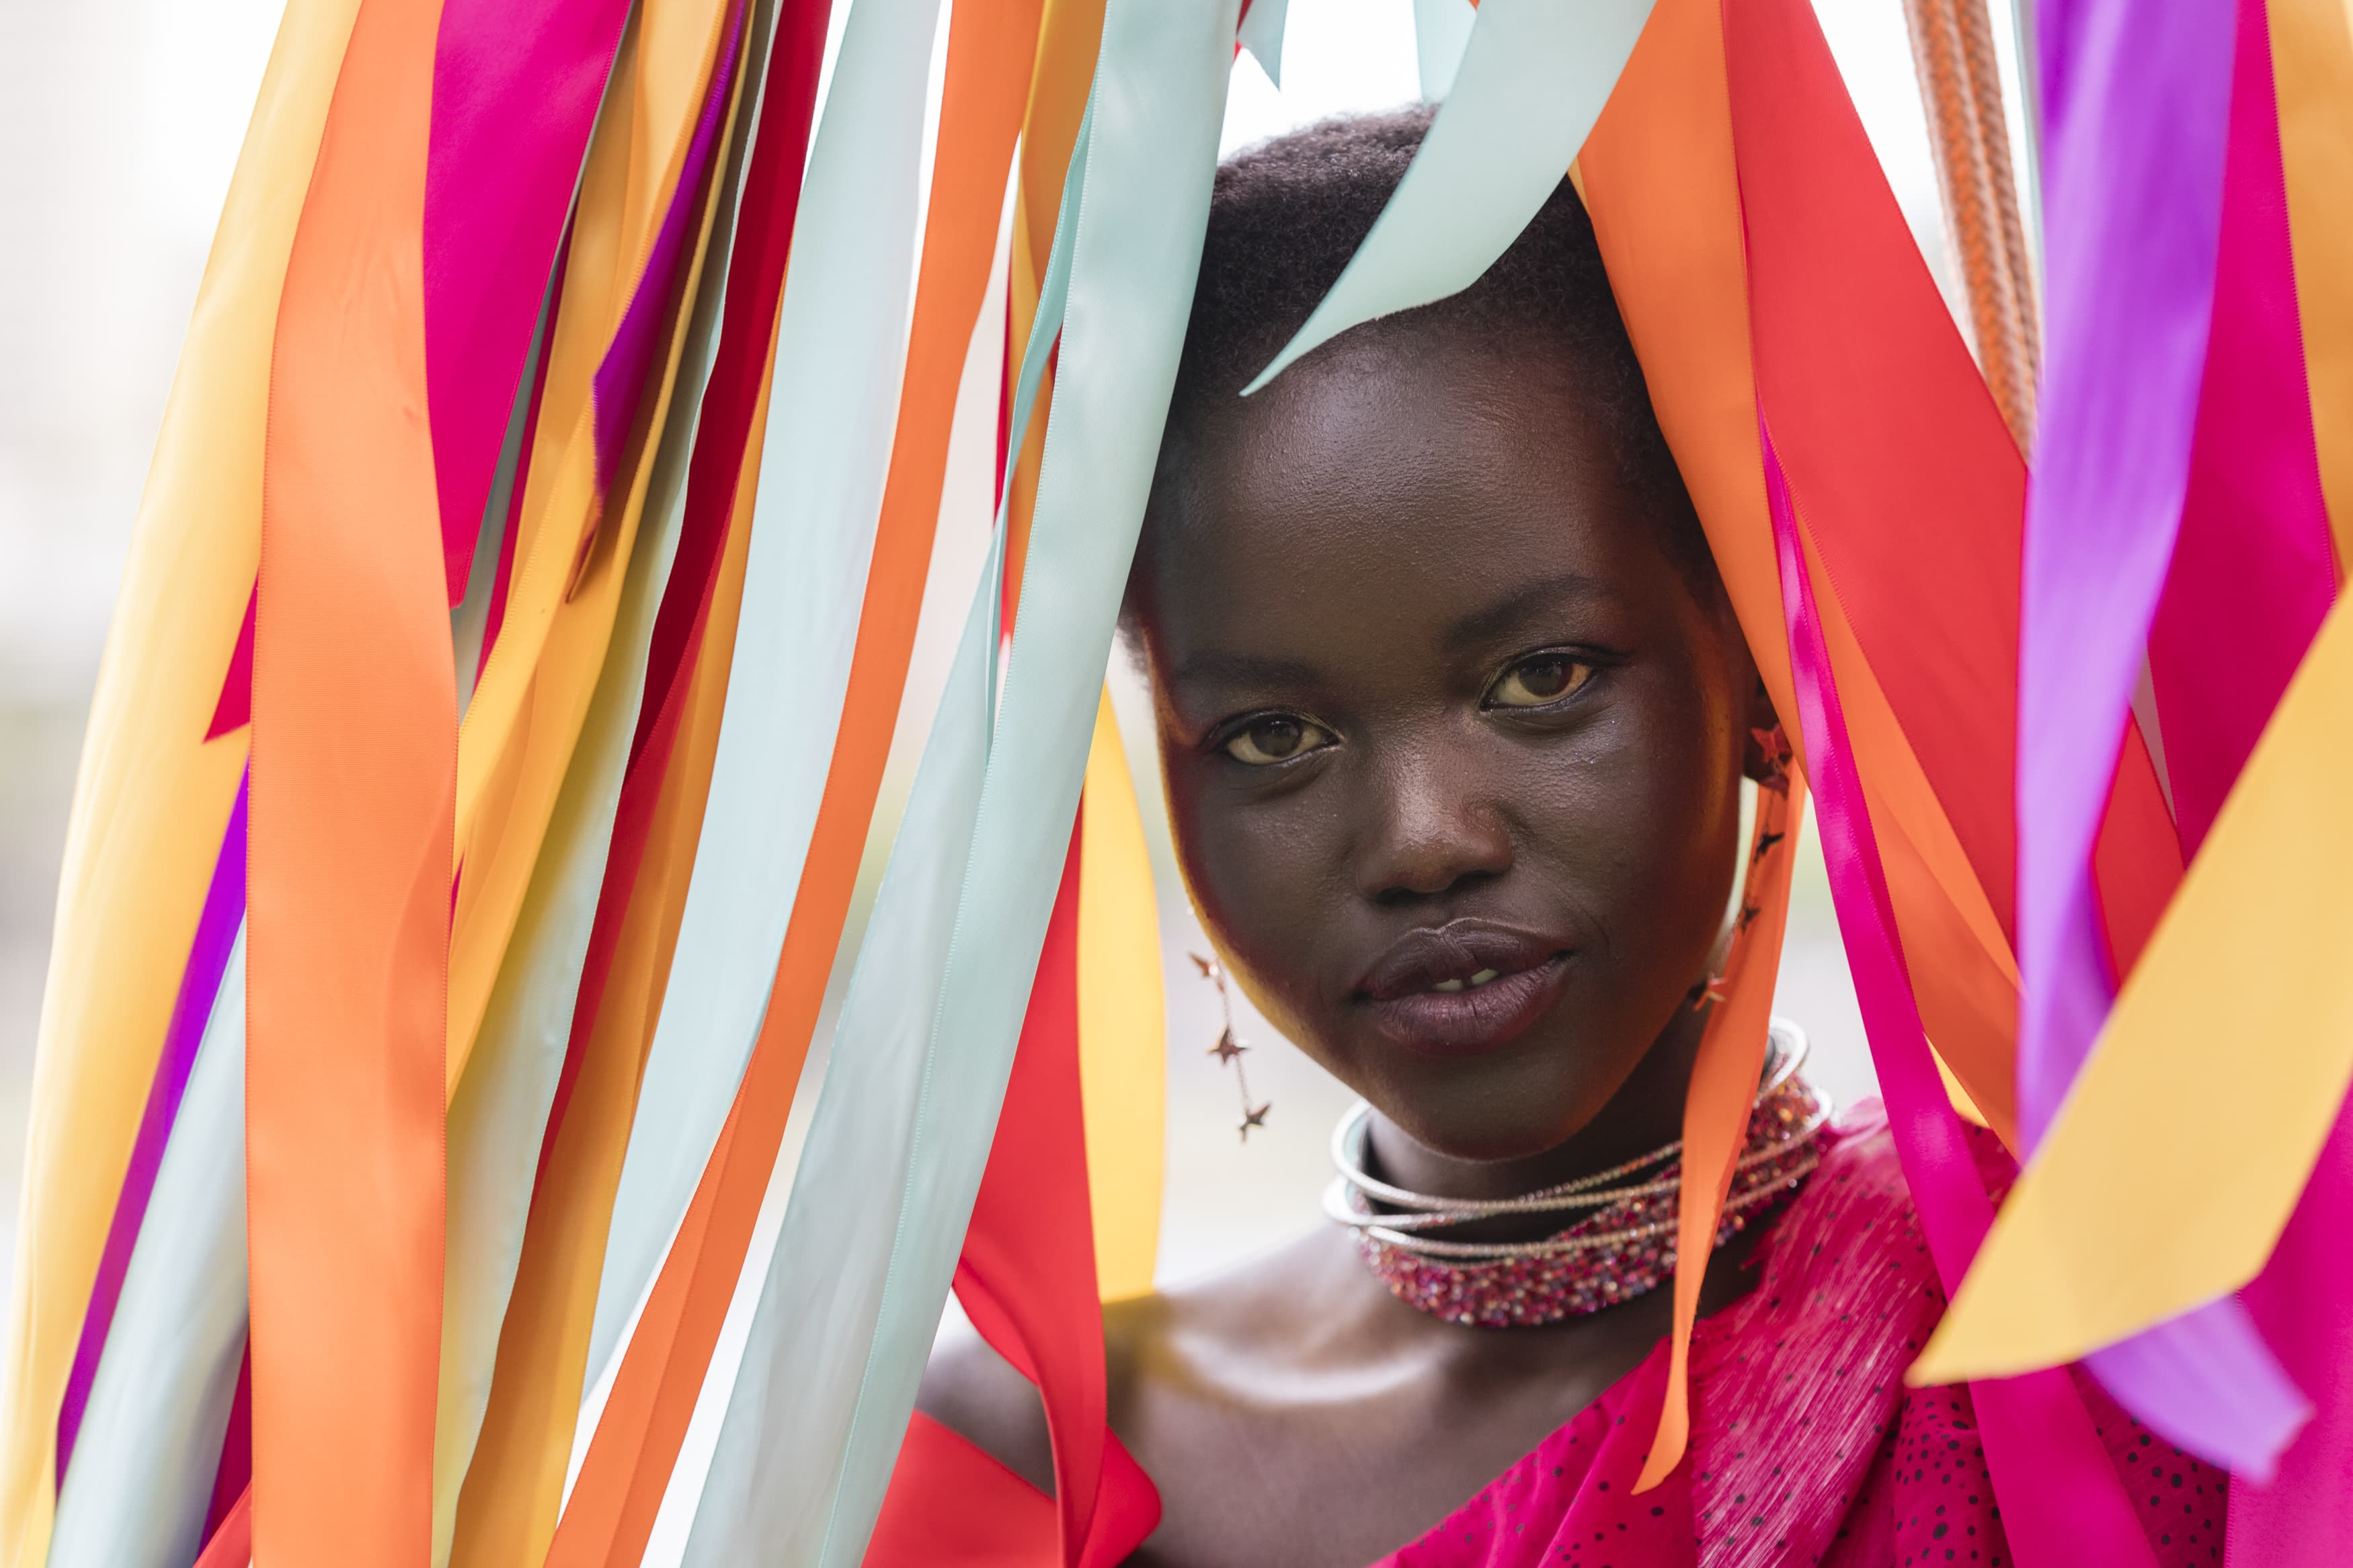 Adut Akech: The South Sudanese refugee making fashion history